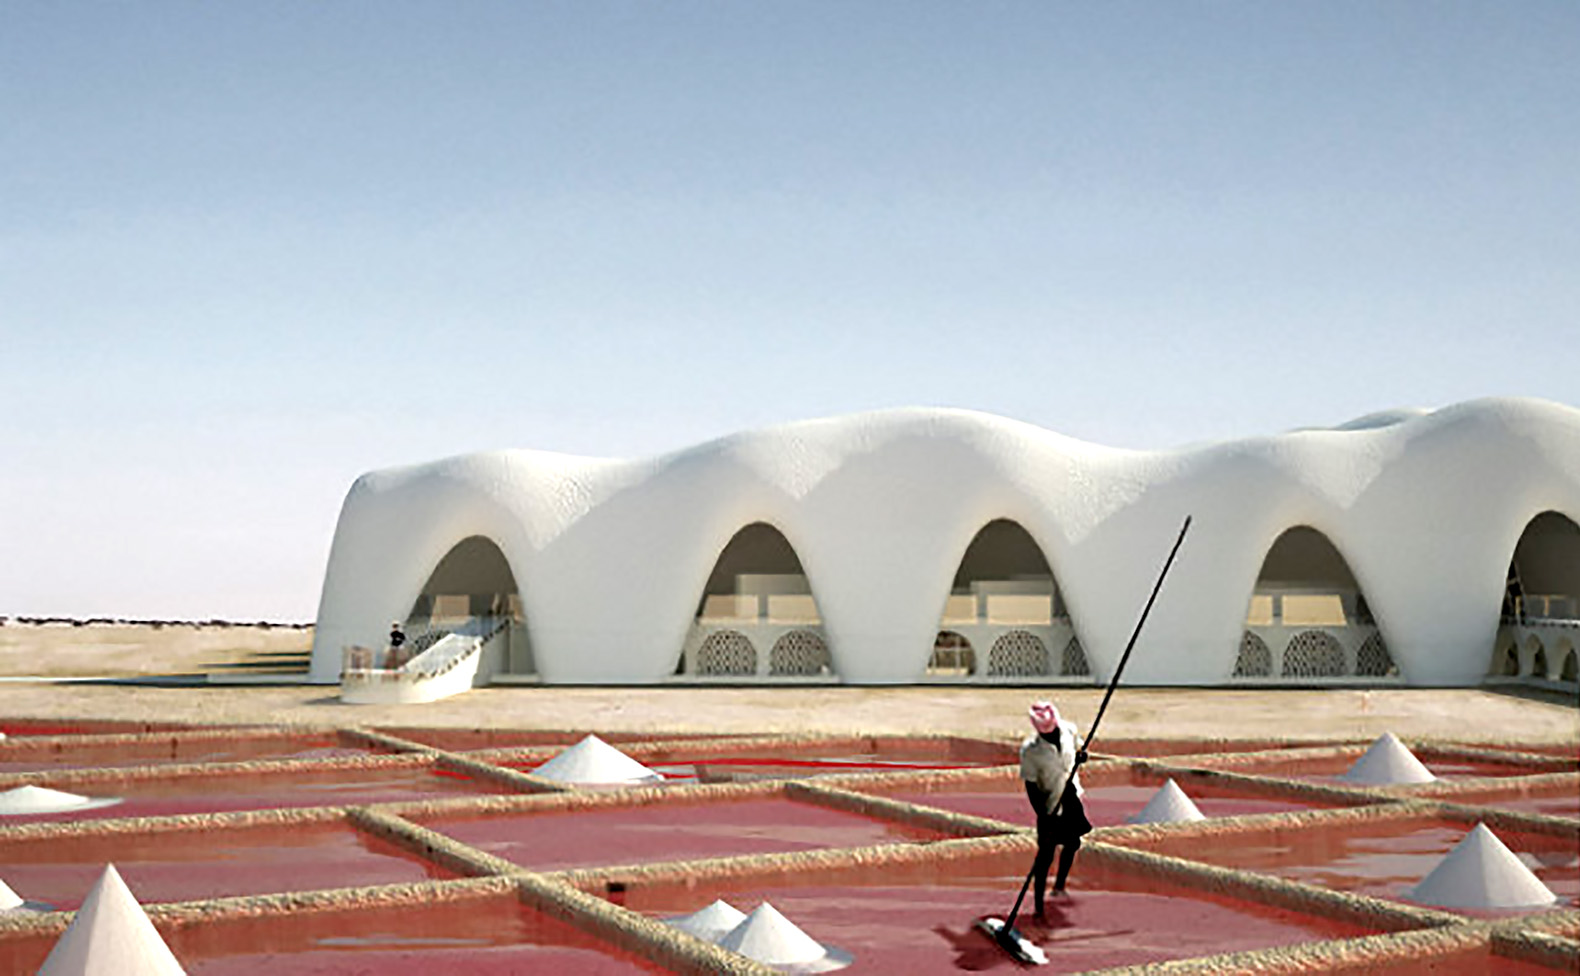 Dutch architect envisions self-sufficient desert cities constructed from salt